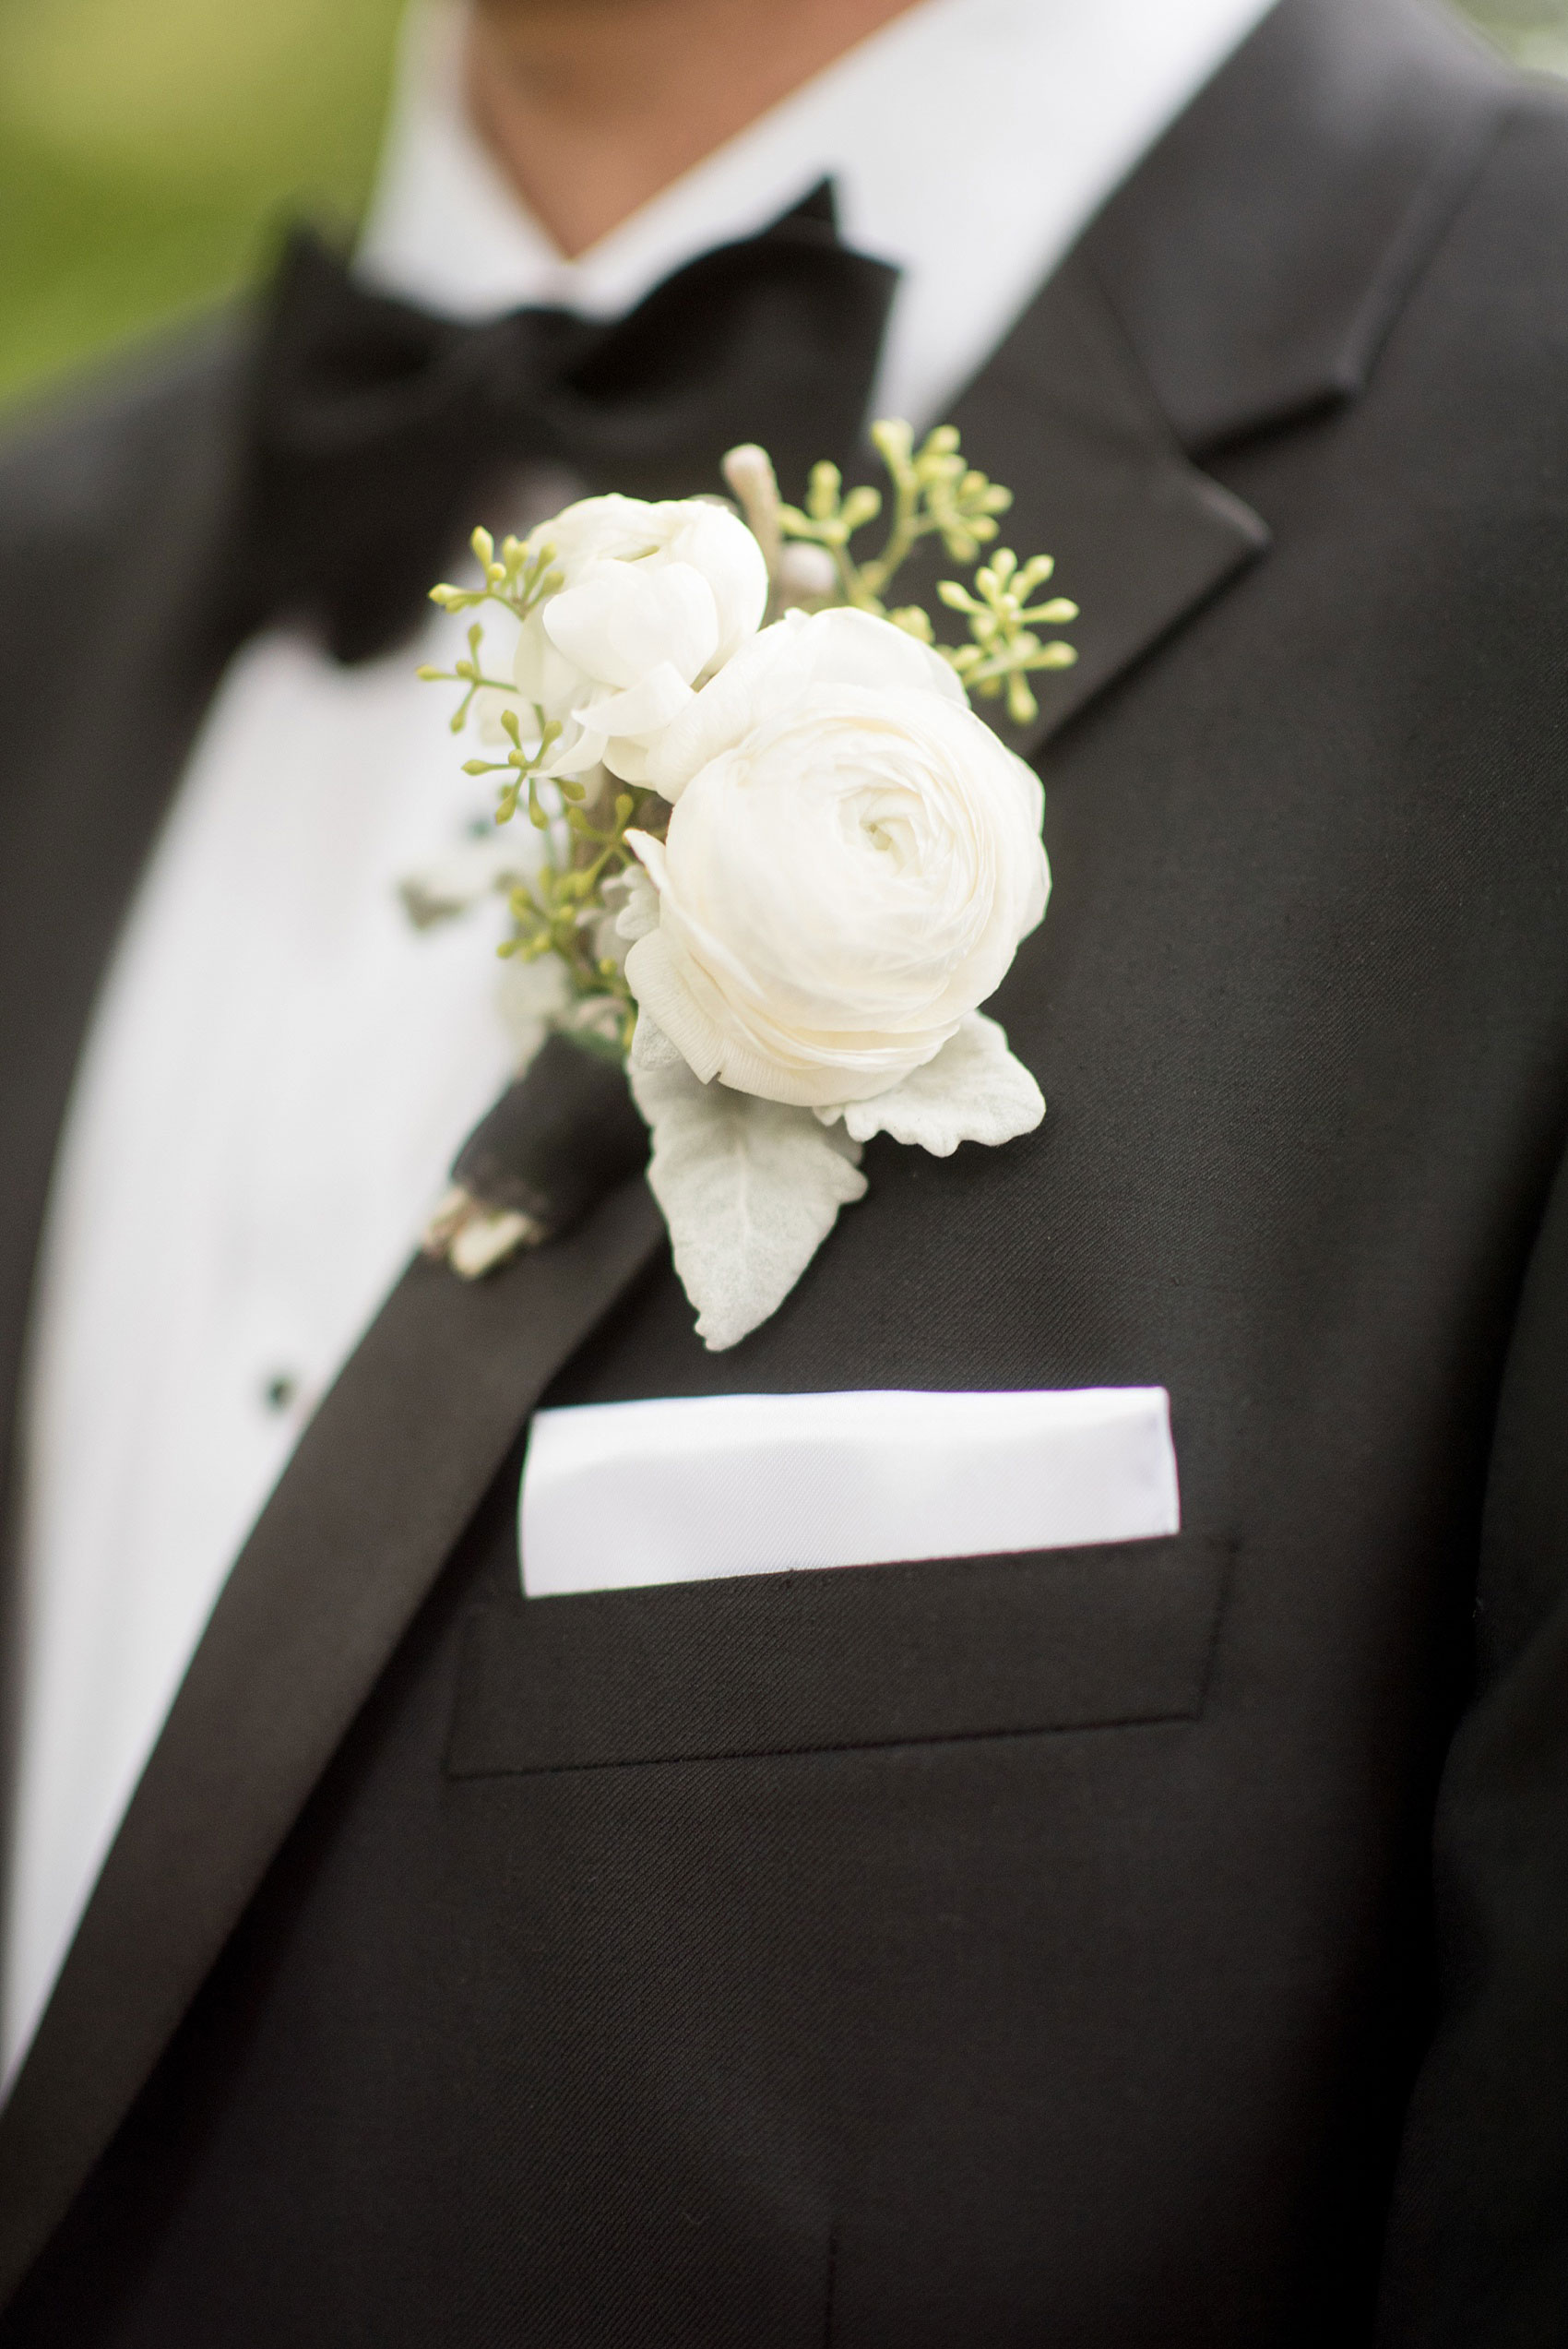 Mikkel Paige Photography photos of a luxury wedding in NYC. Image of the groom's white ranunculus boutonniere.